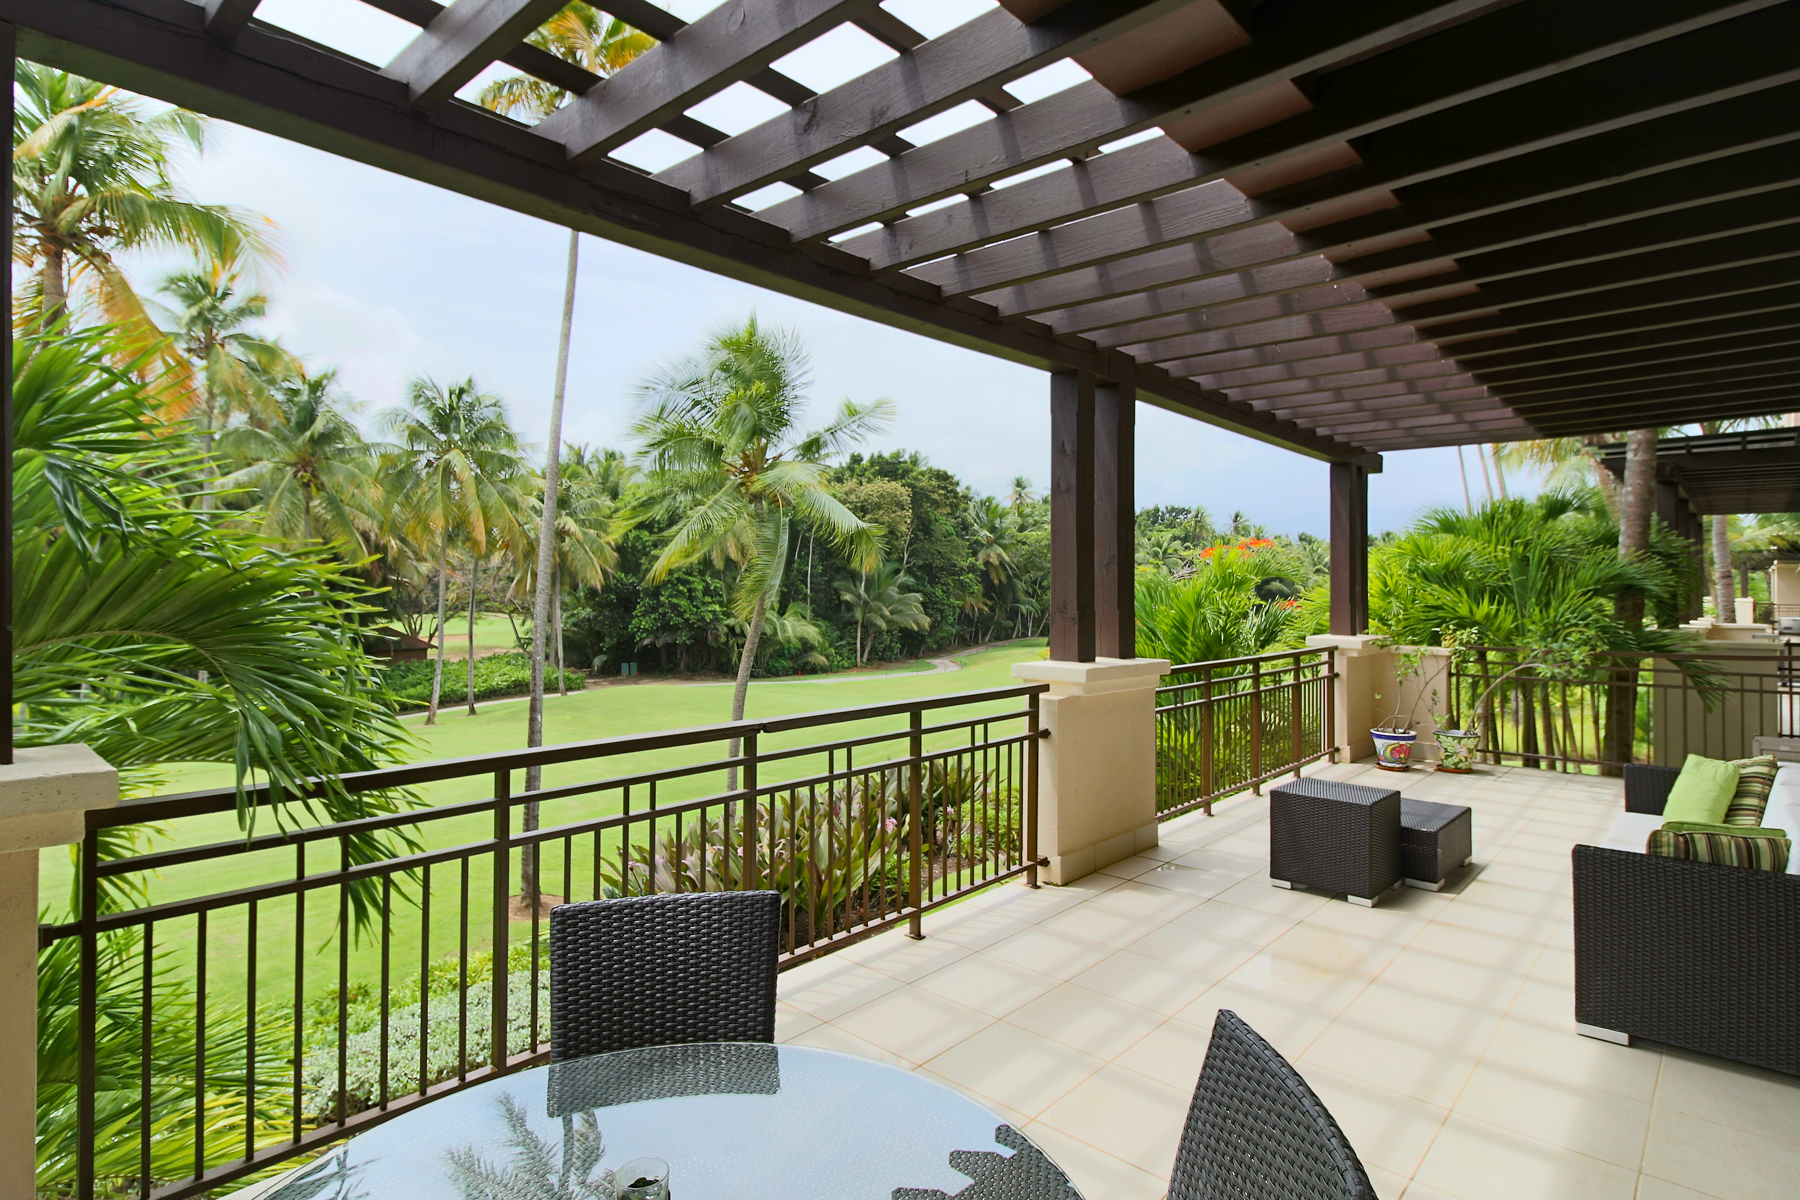 Additional photo for property listing at Fairway Villa at St Regis Bahia Beach State Rd. 187, Km. 4.2 Las Verandas Apt 3222 Bahia Beach, 波多黎各 00745 波多黎各